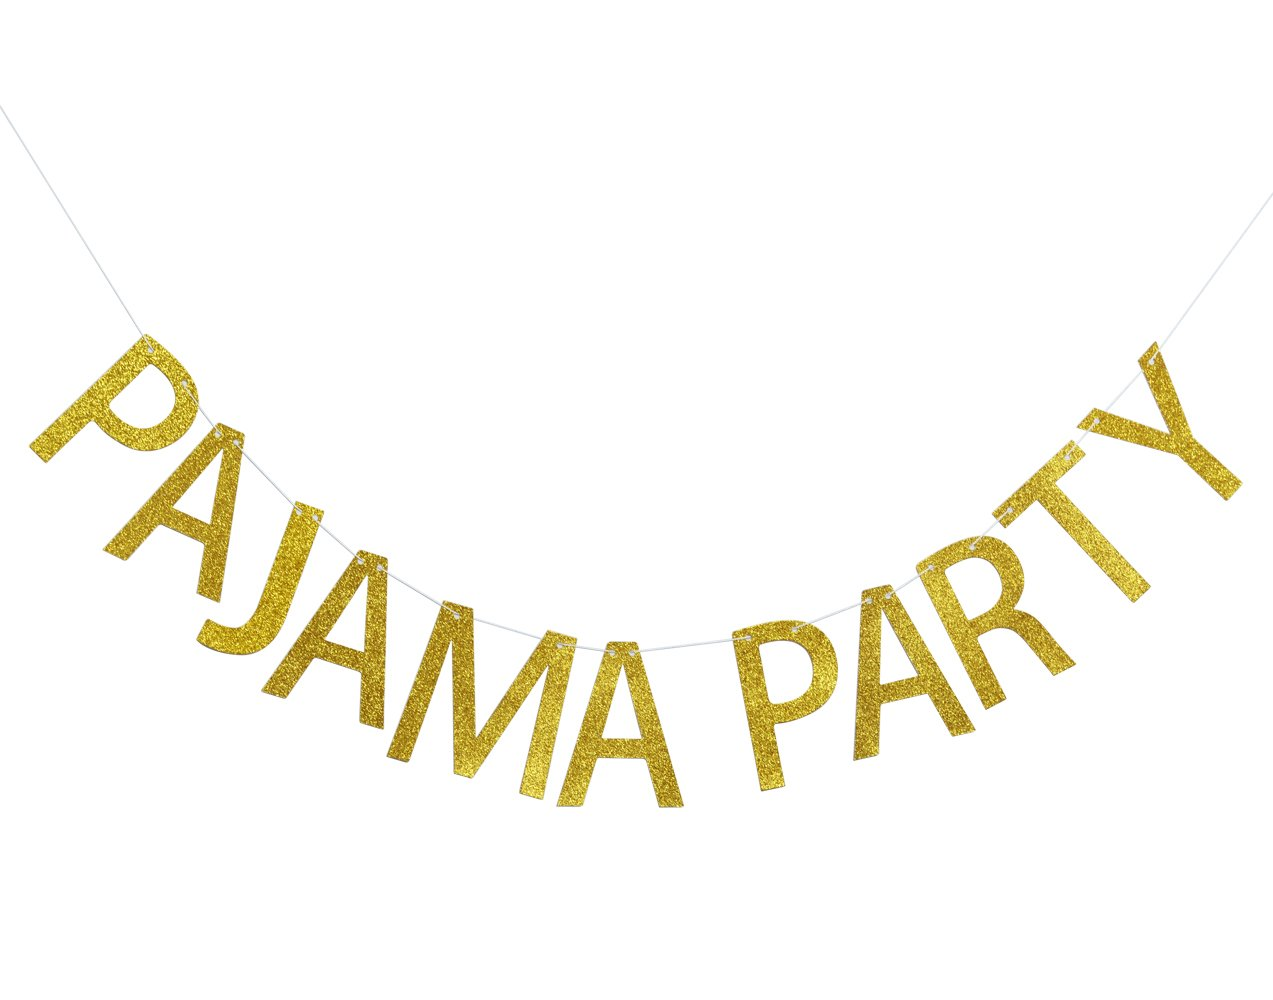 Pajama Party Gold Glitter Banner, Pajama Theme Sign (Gold) by Qttier